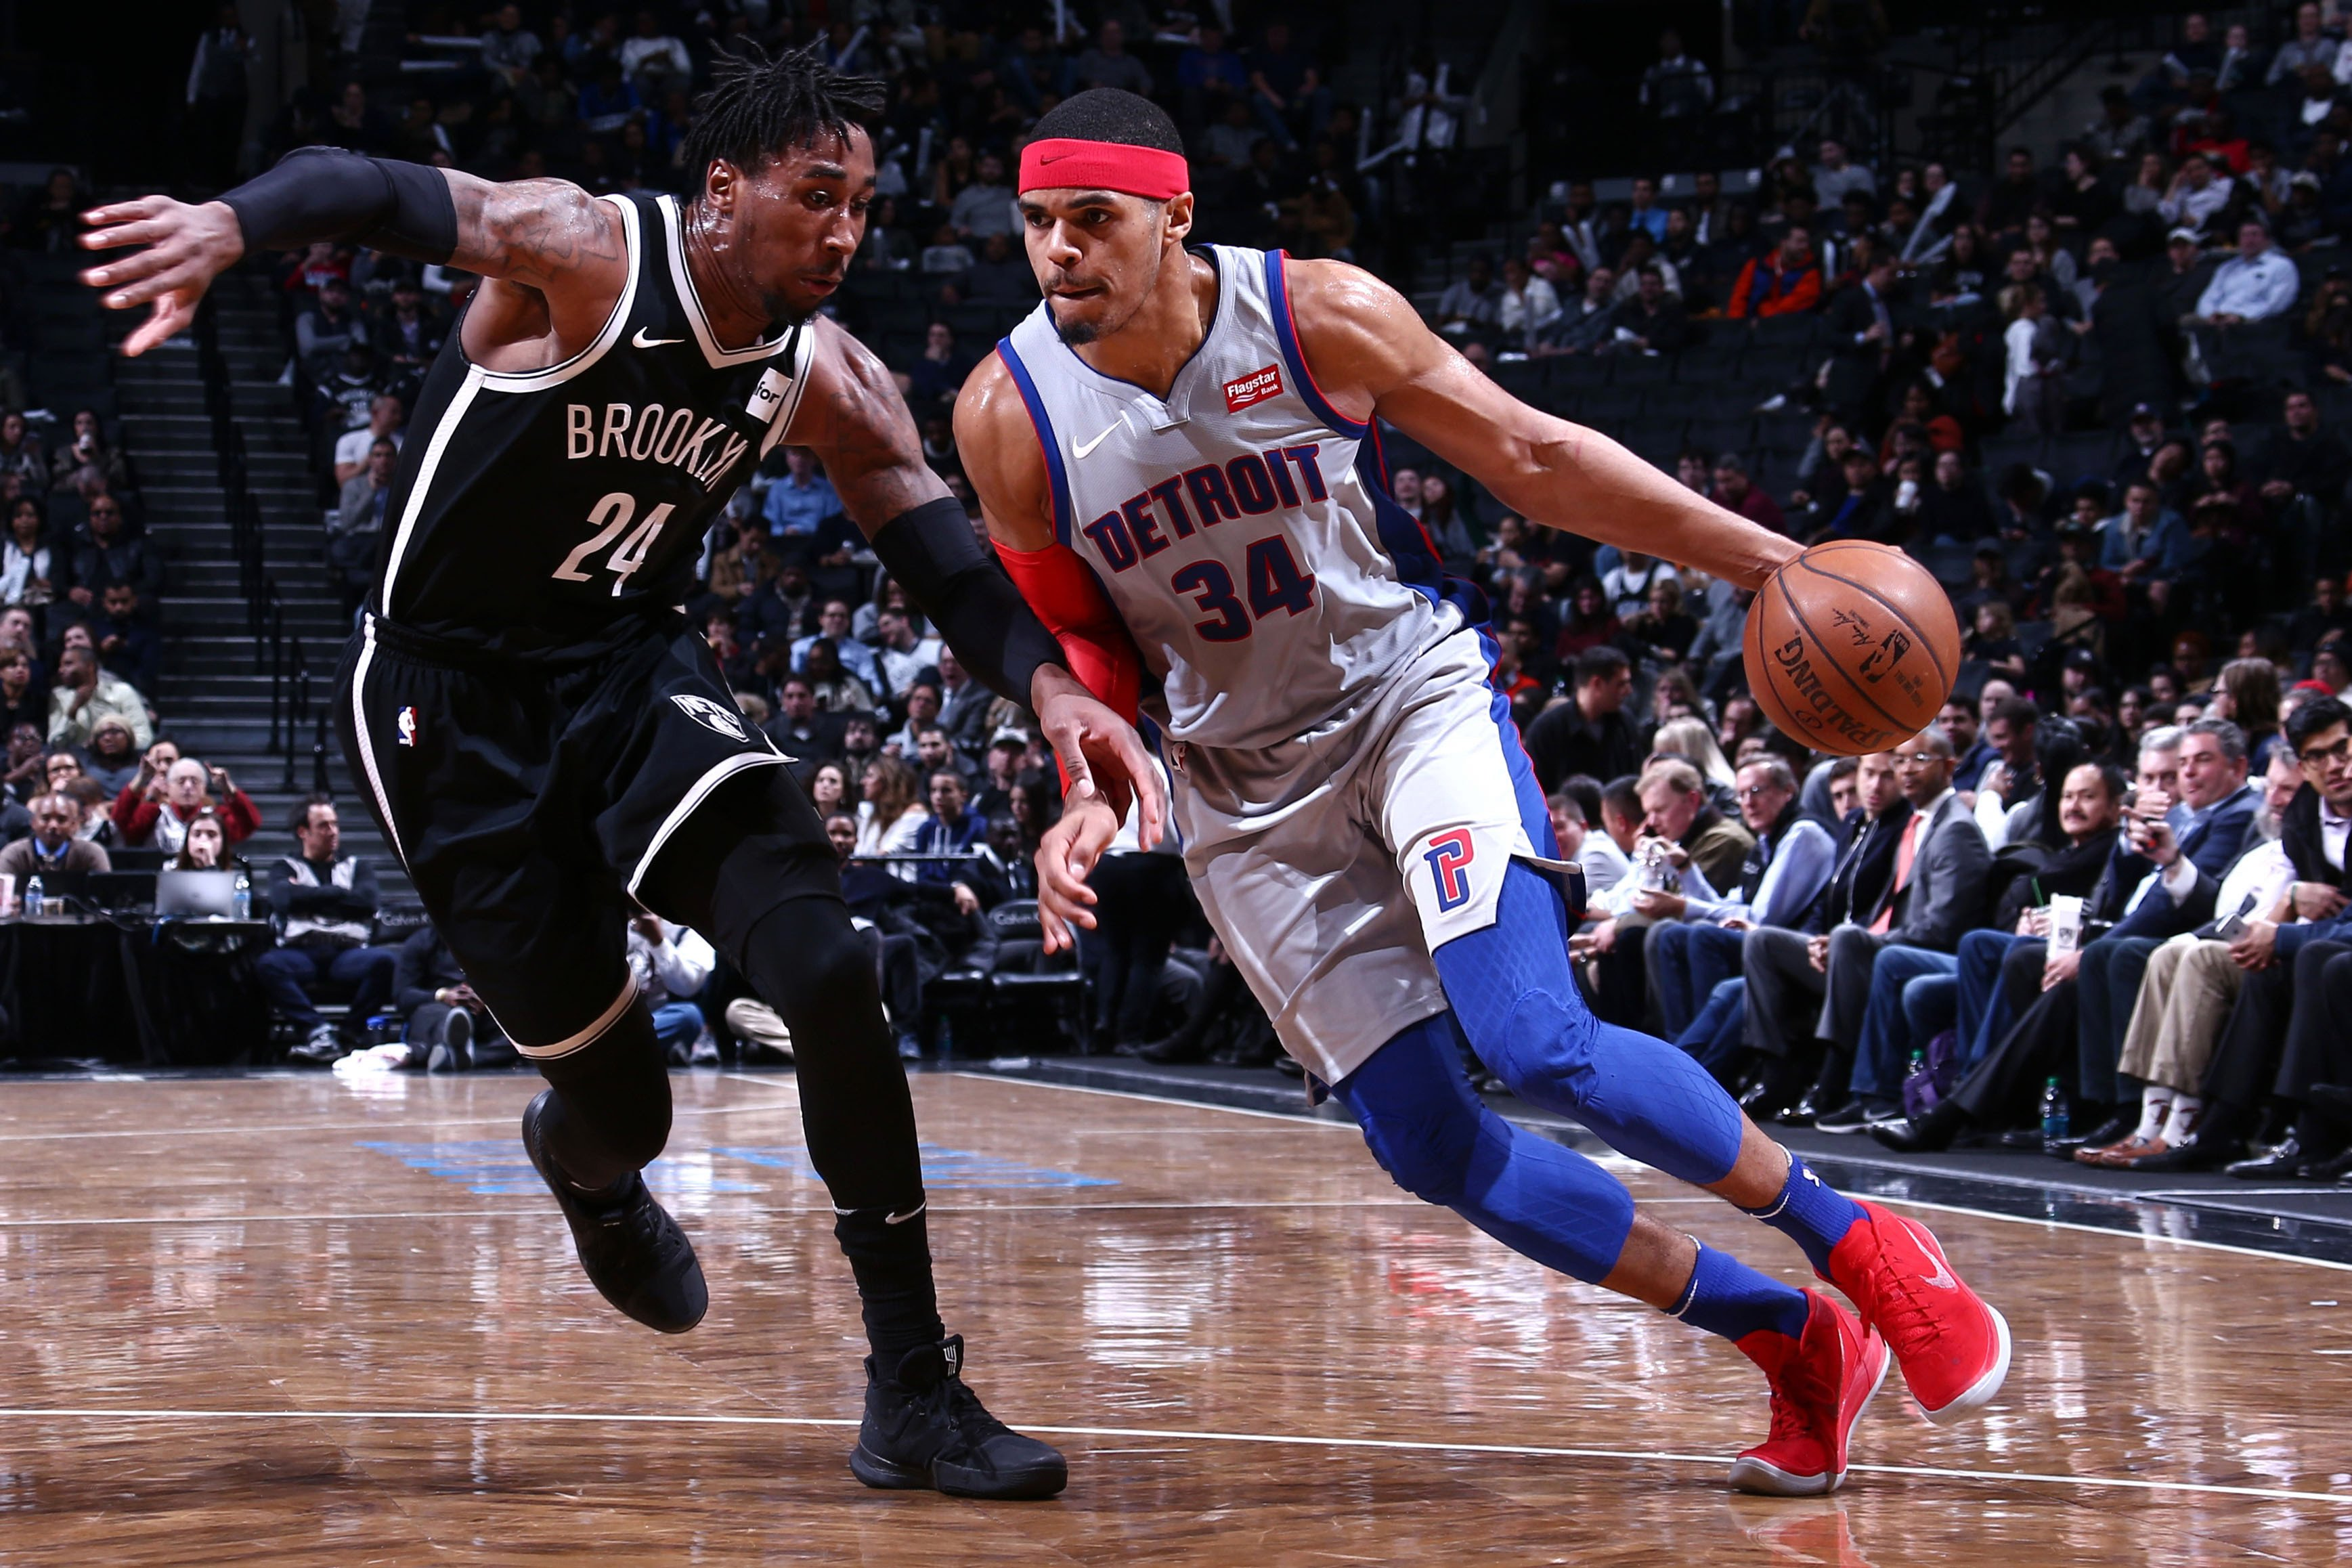 The Pistons abused Nets with one play, over and over again